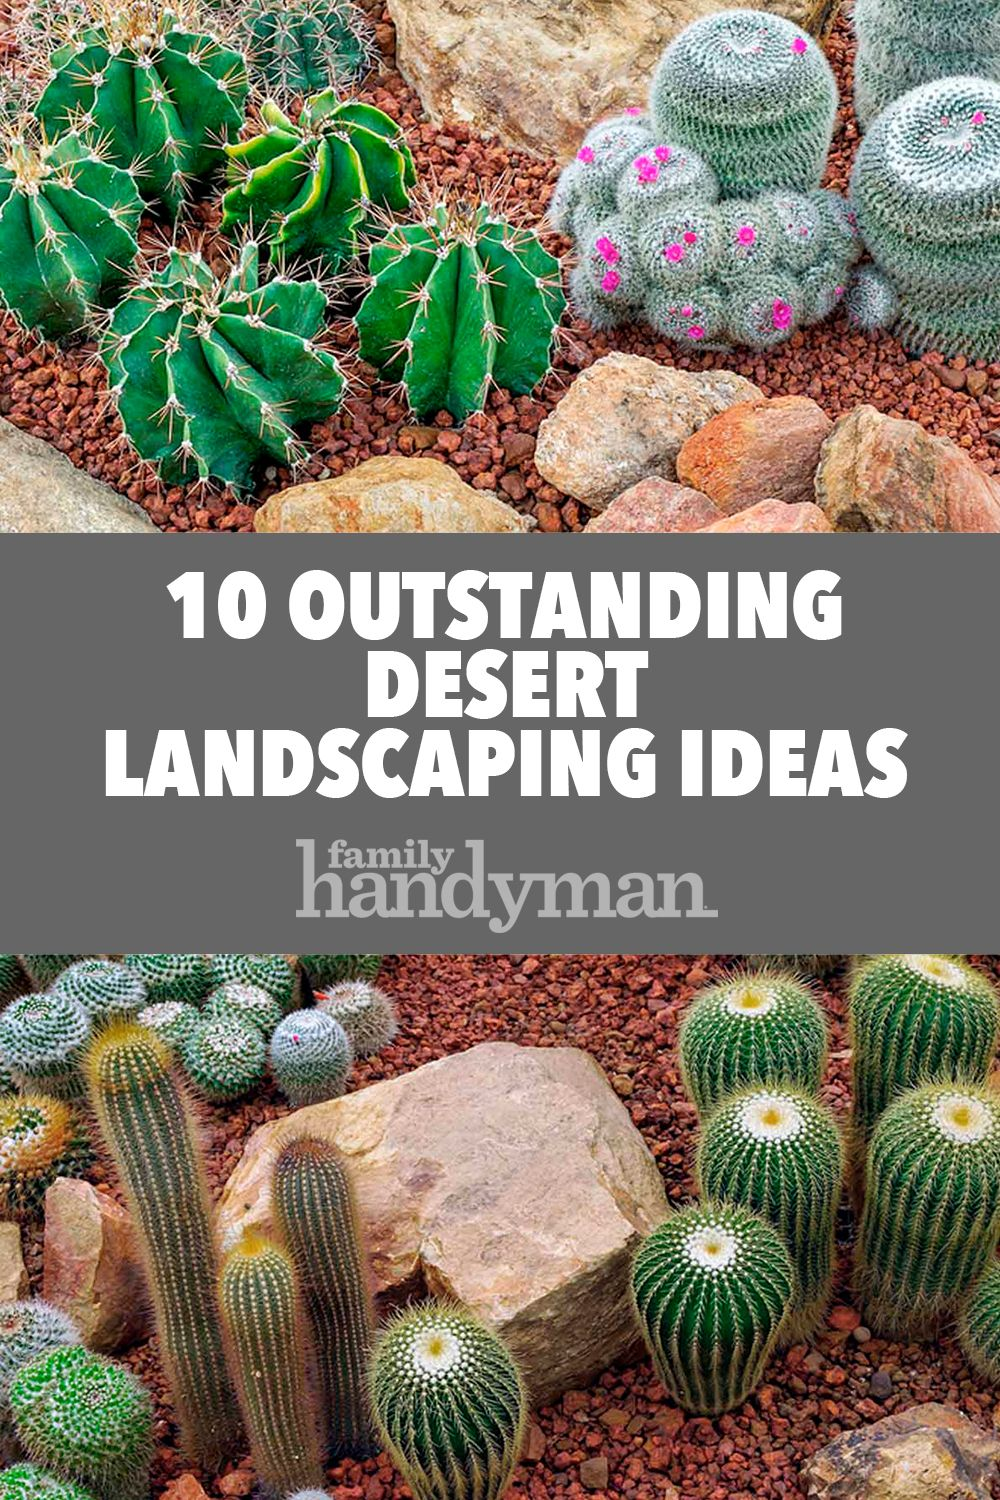 10 Outstanding Desert Landscaping Ideas | Desert ... on Backyard Desert Landscaping Ideas On A Budget  id=62314